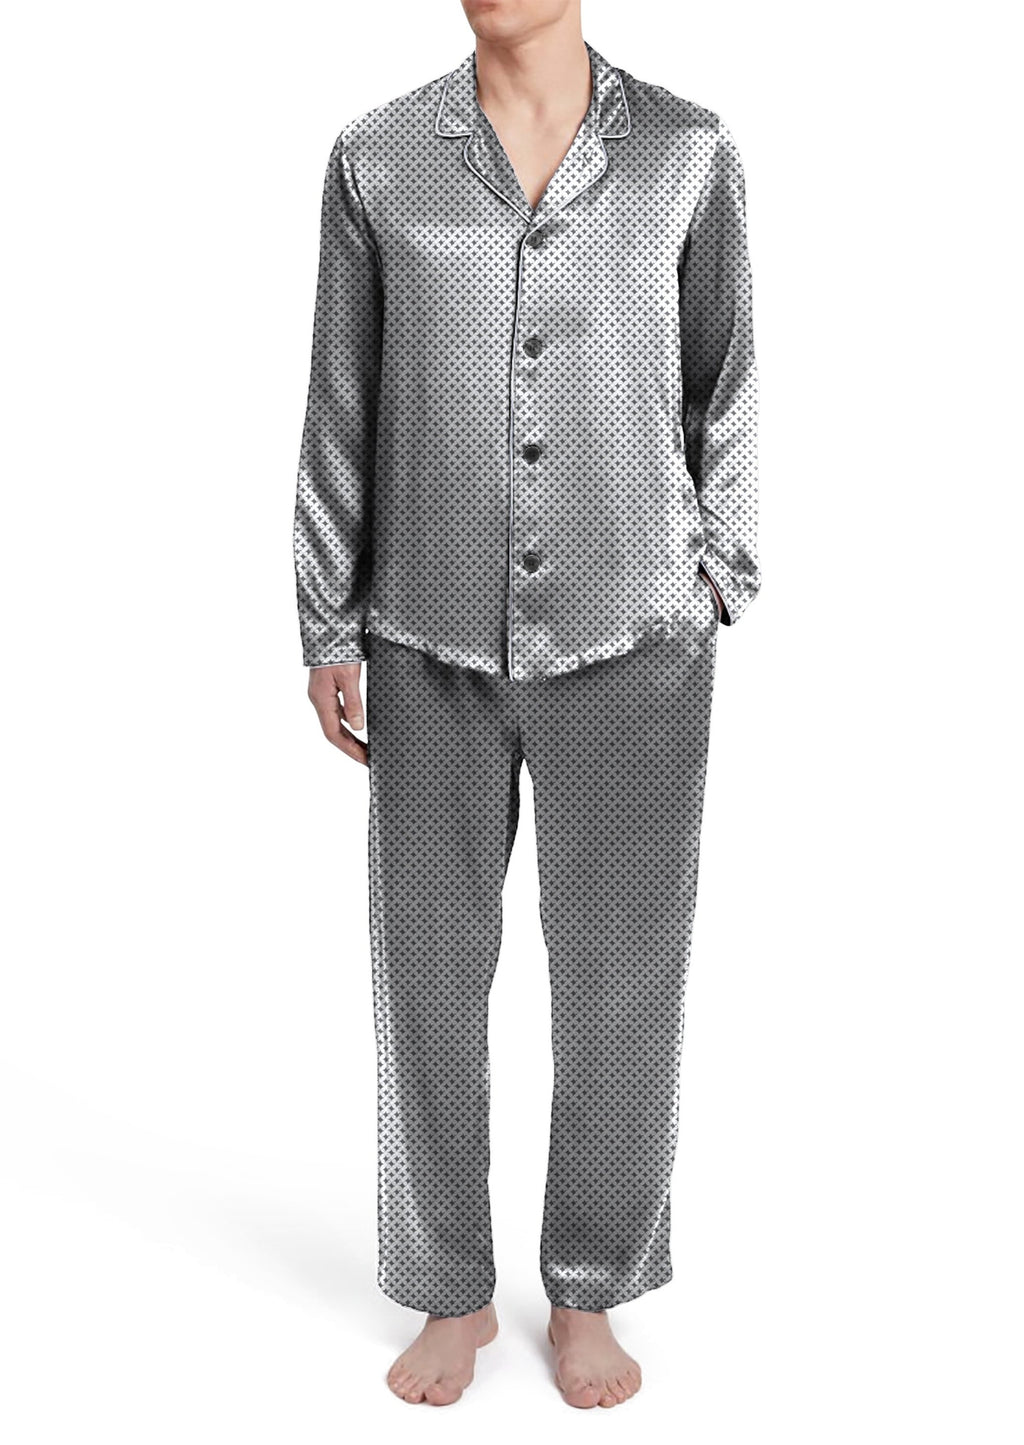 Mens check Silky Satin Pajama Set